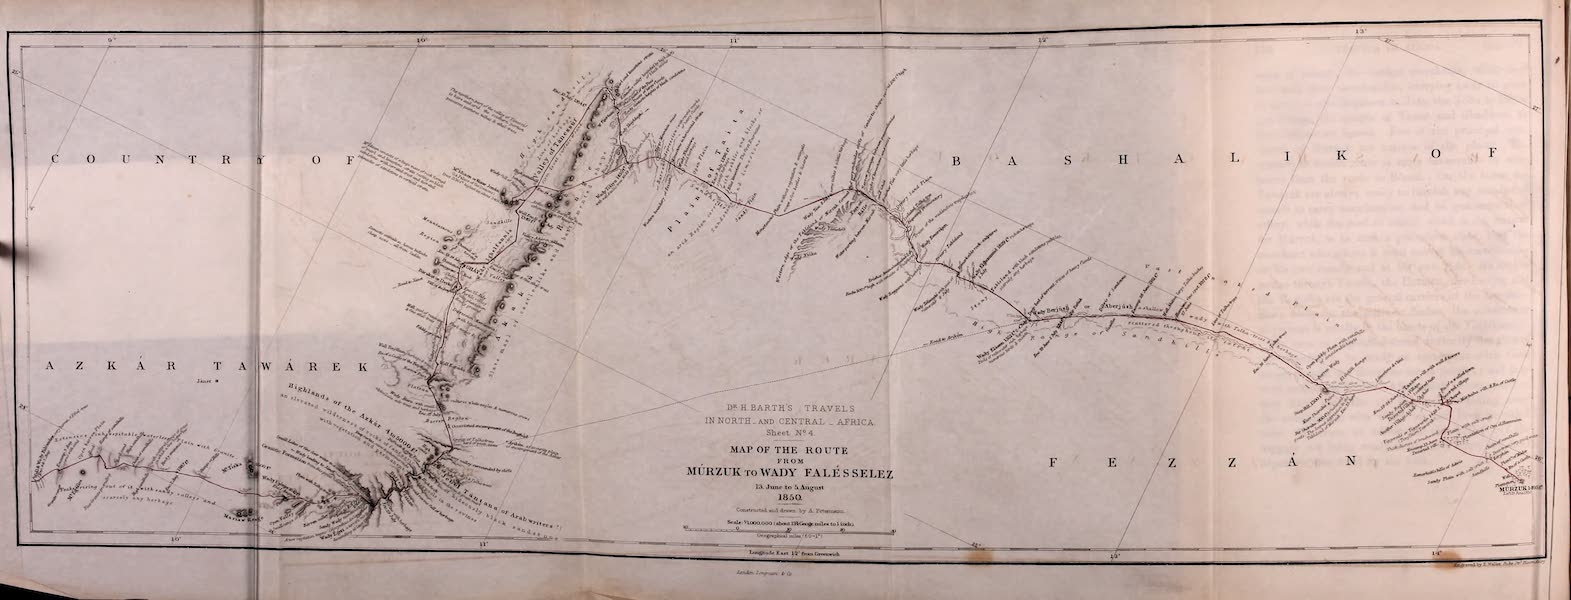 Travels and Discoveries in North and Central Africa Vol. 1 - Route from Murzuk to Wadi Falesselez (1857)